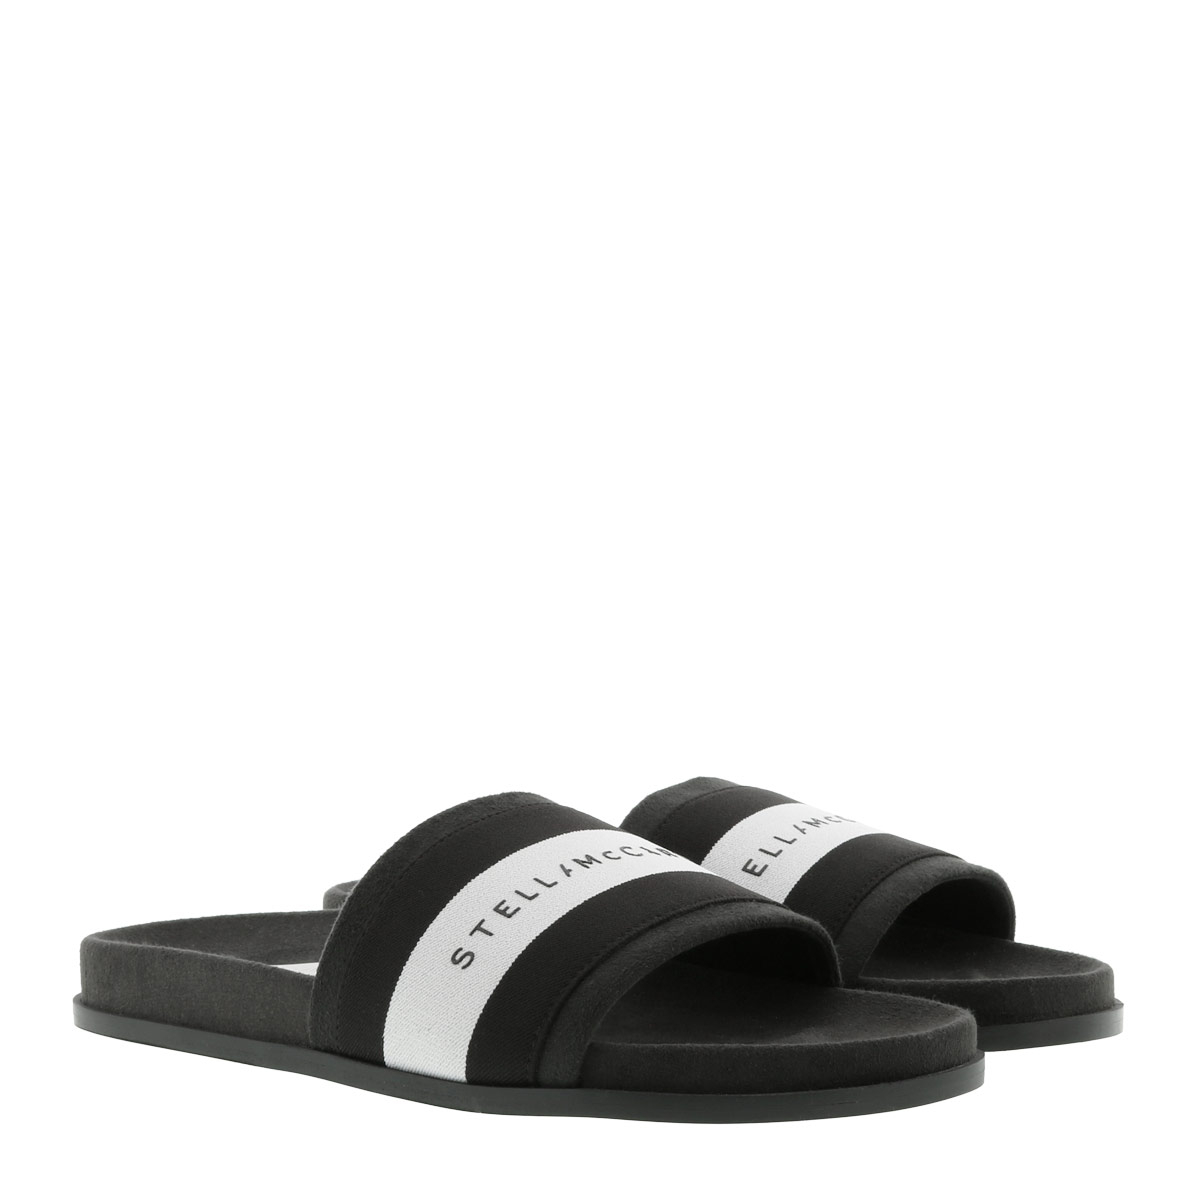 Stella McCartney Schuhe - Logo Patch Slides Black - in grau - für Damen